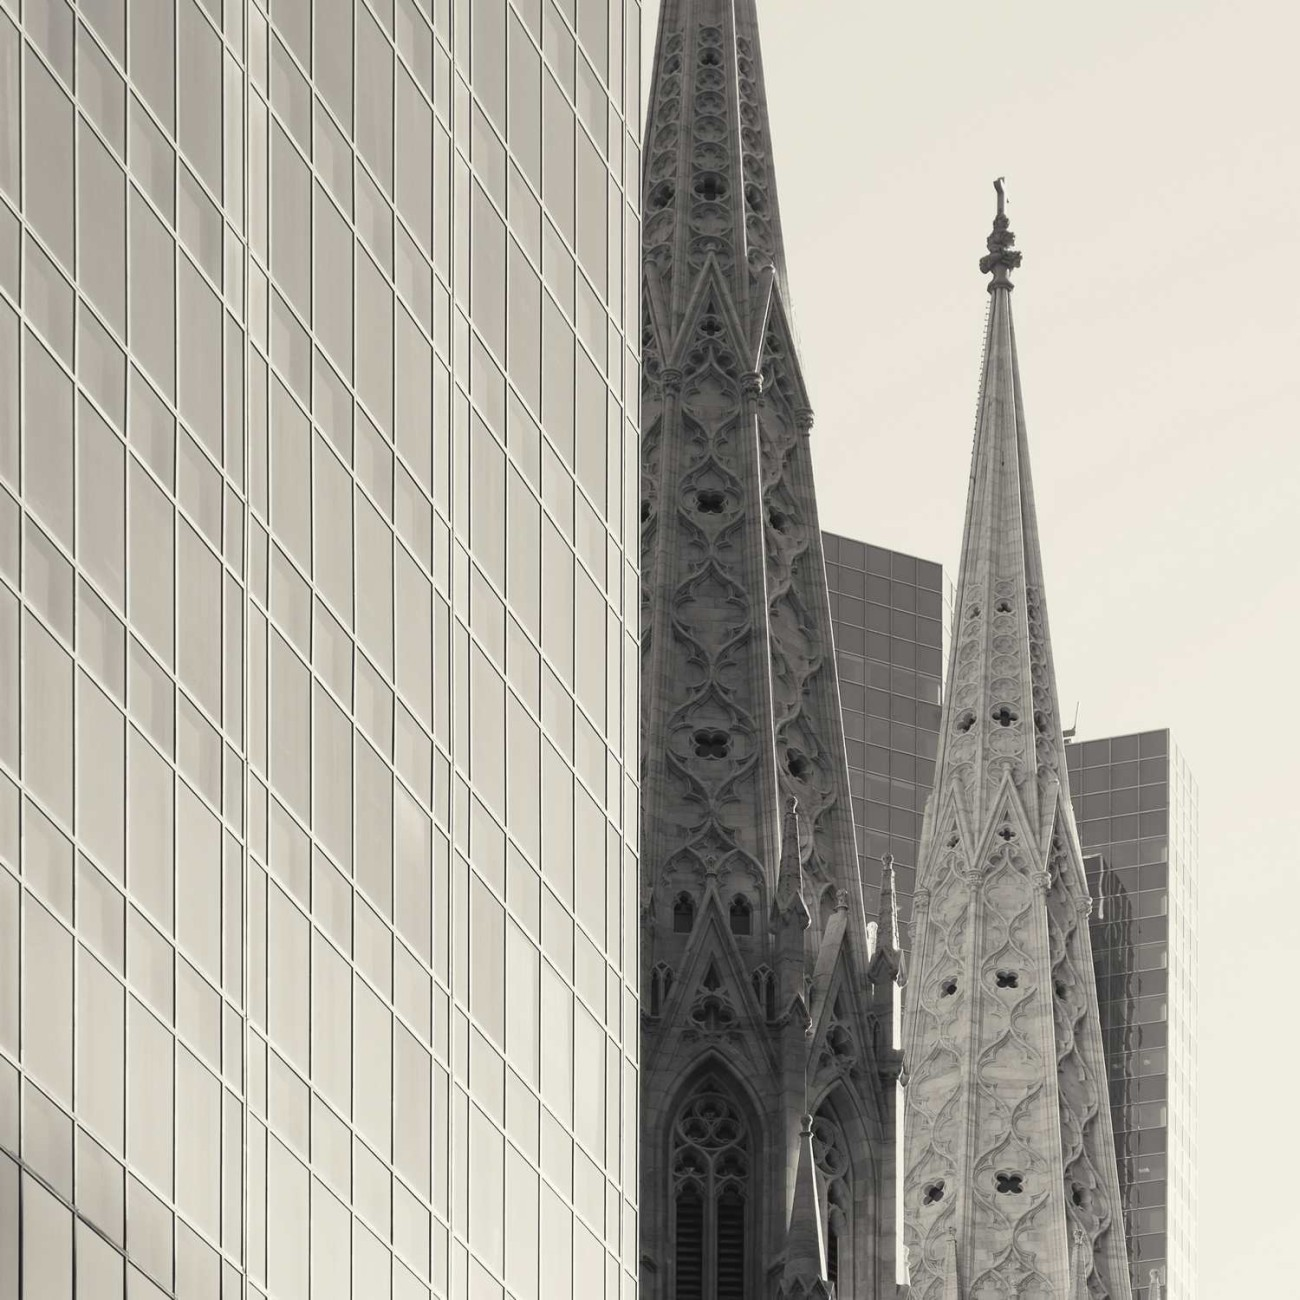 Steeples of St. Patricks and office buildings, study 1, New York